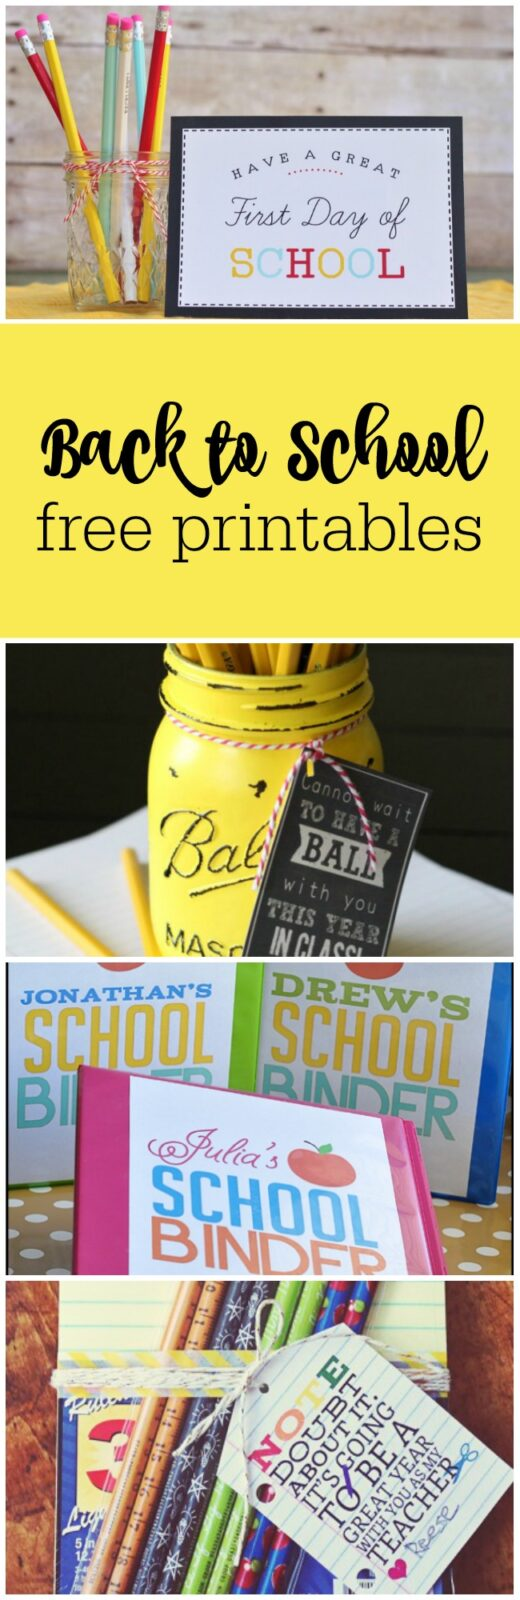 Super cute back to school free printables curated by The Party Teacher